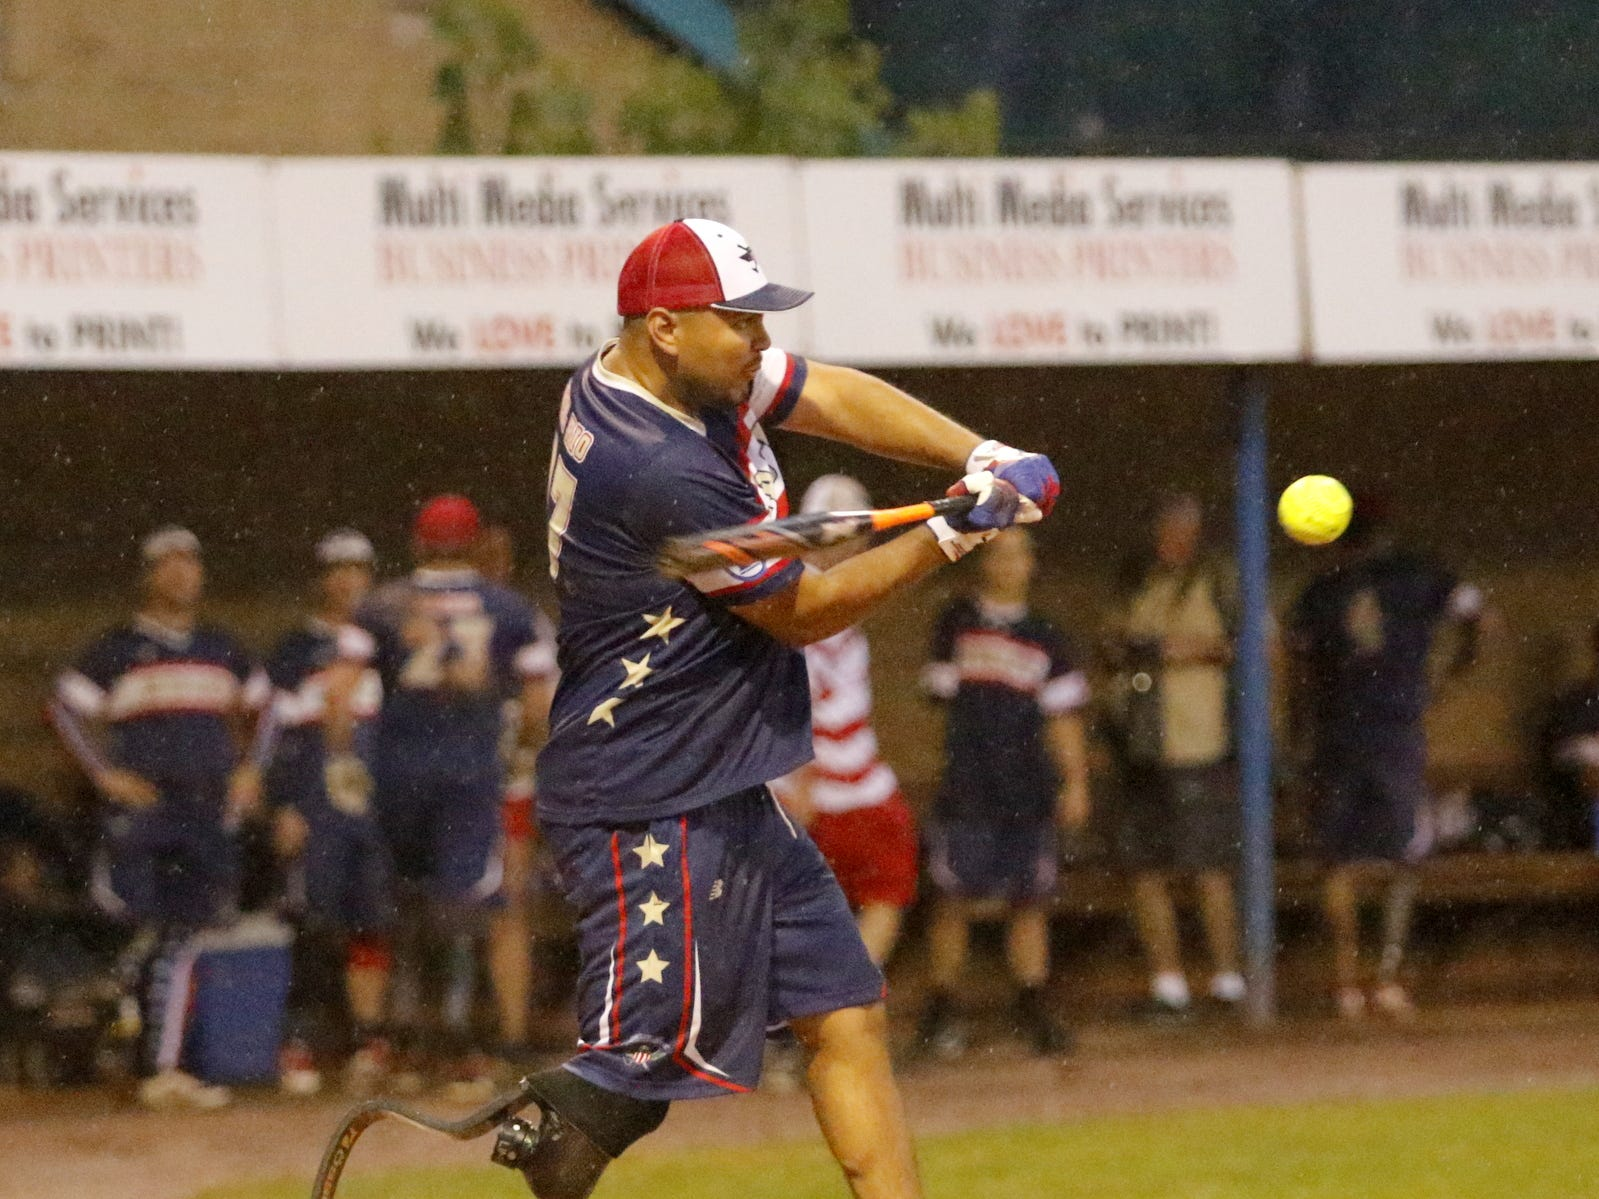 The Elmira Pioneers hosted the Wounded Warrior Amputee Softball Team on July 21, 2018 at Dunn Field. The Wounded Warrior team was an 11-5 winner in the seven-inning game, which was played in a steady rain.